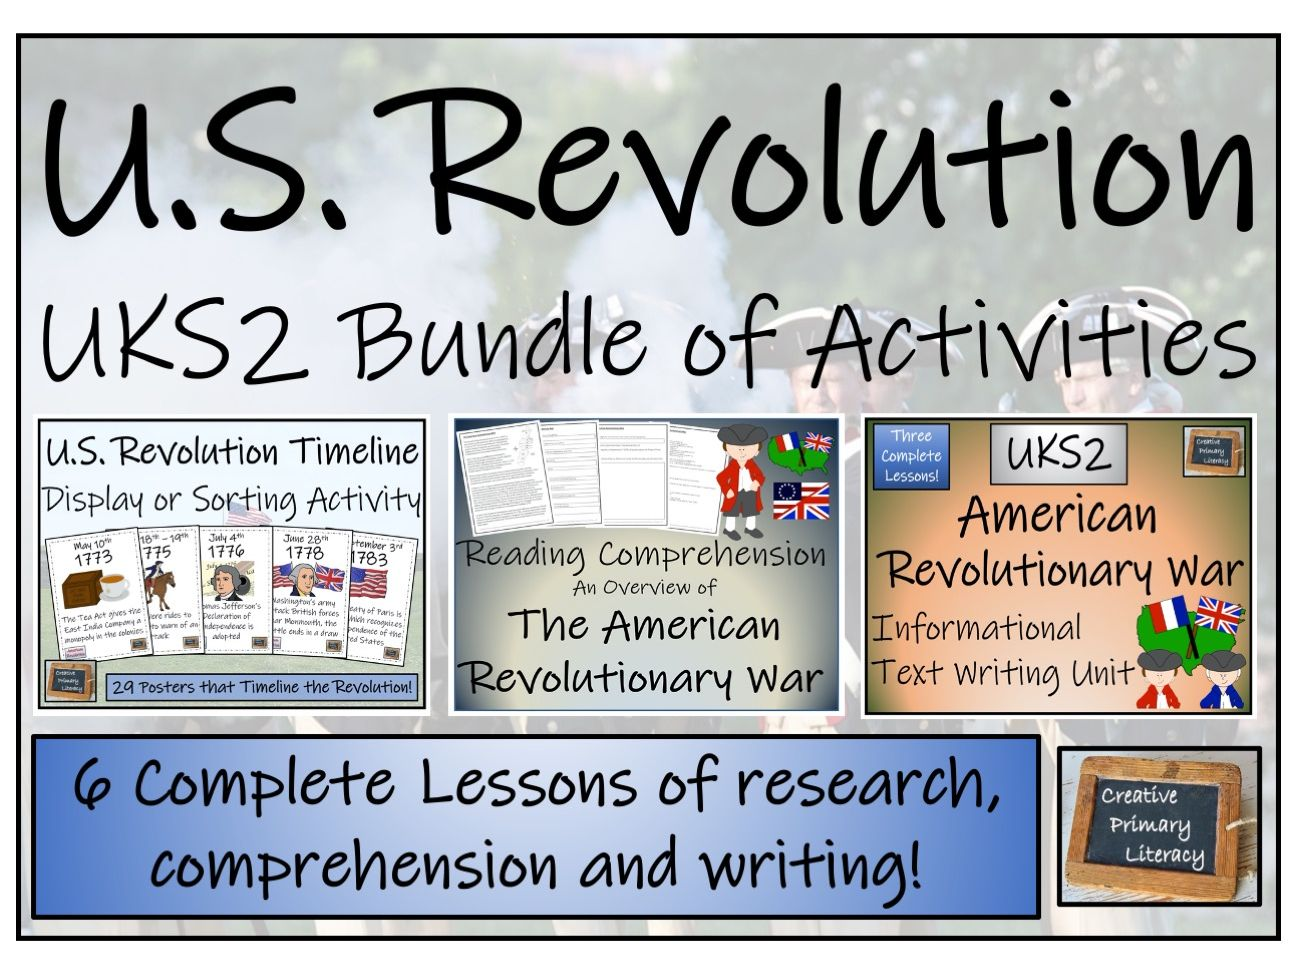 UKS2 American Revolutionary War - Display, Research, Reading Comprehension & Writing Bundle